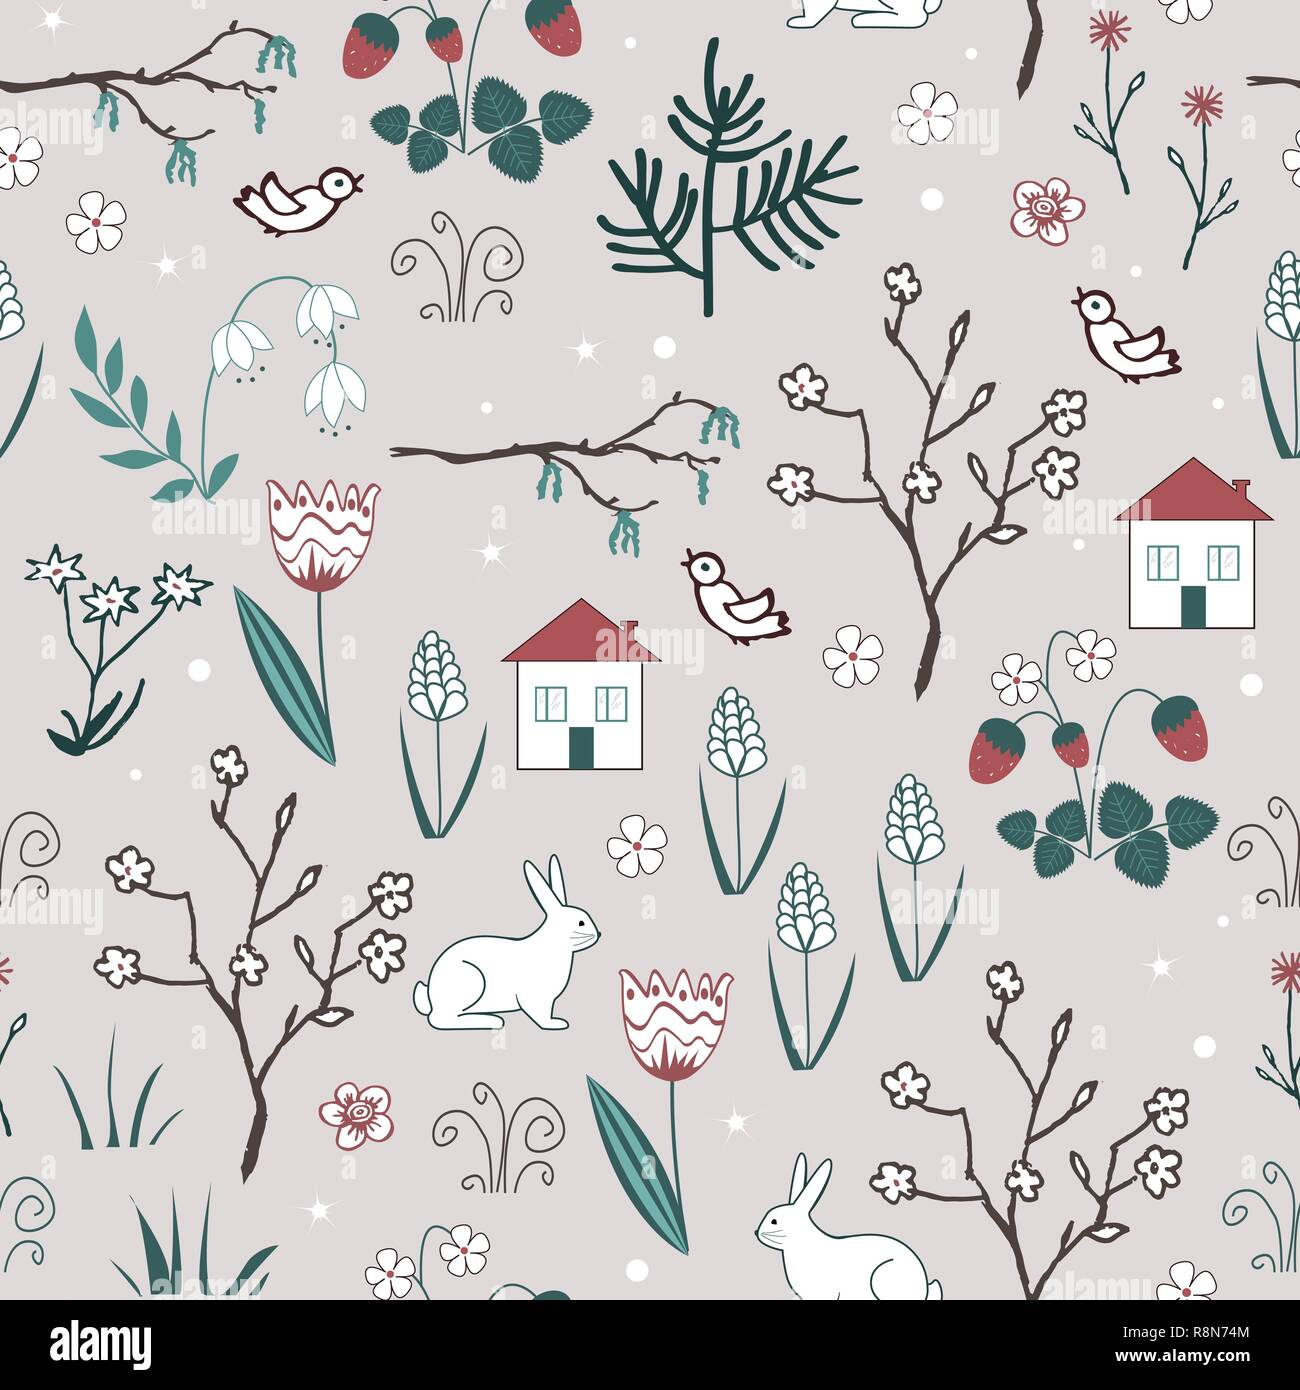 Cute spring vector seamless pattern with cartoon doodle